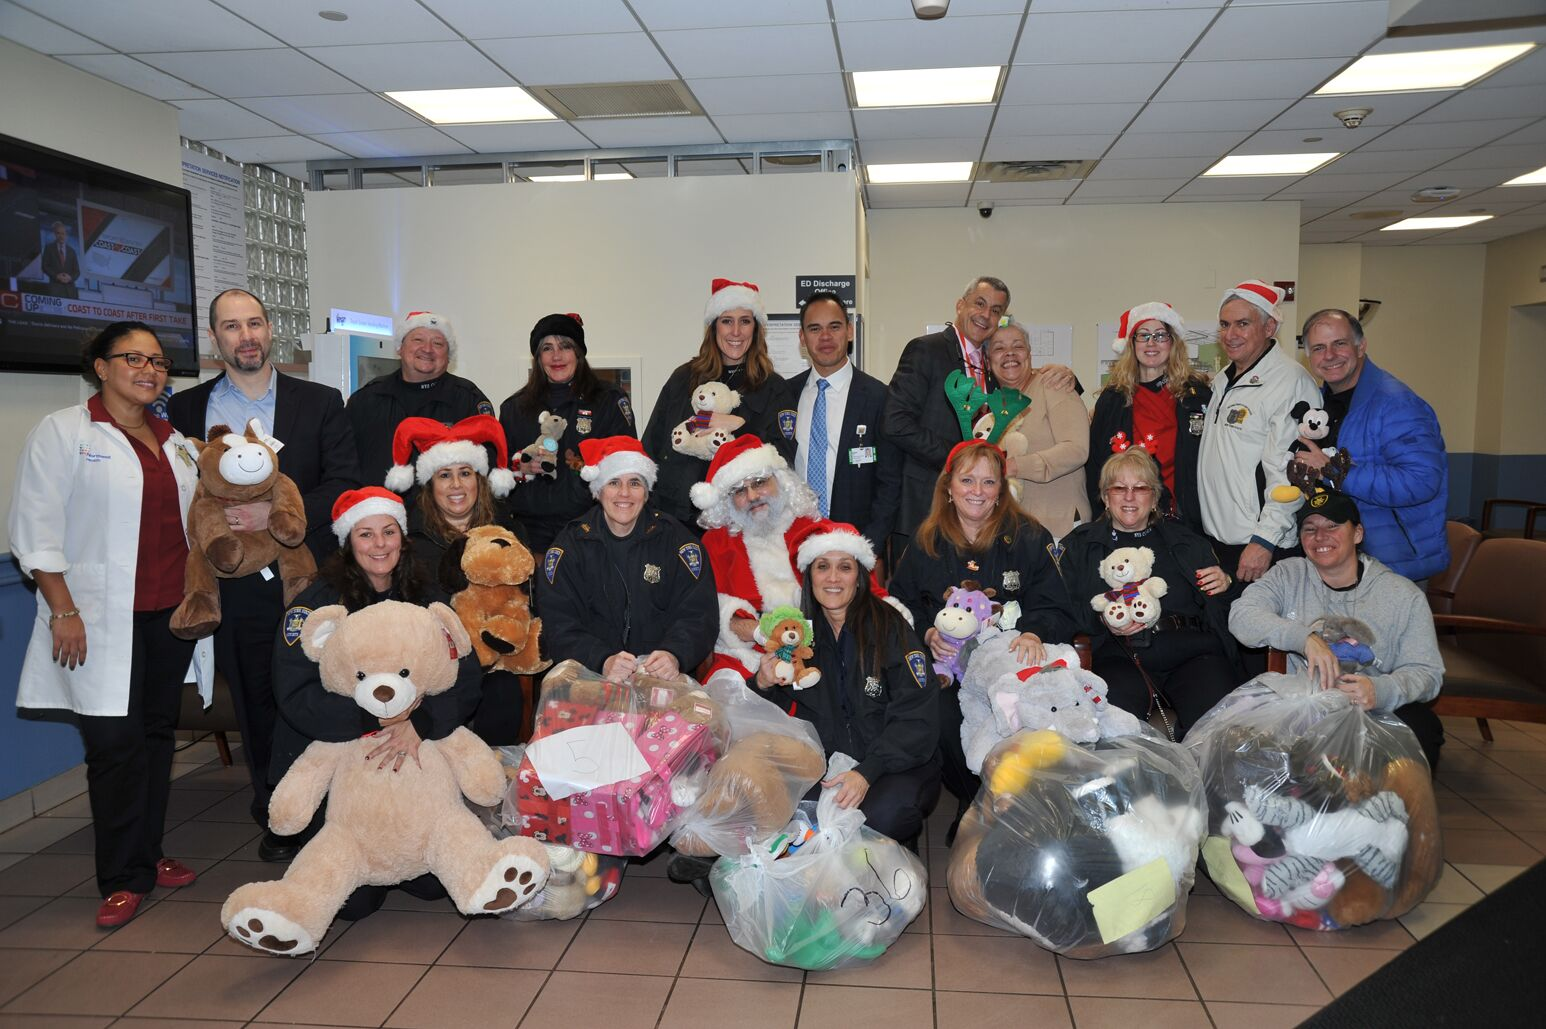 Long Island Jewish Valley Stream Hospital medical staff receive teddy bear donations for pediatric patients from the New York State Fraternal Order of Court Officers.